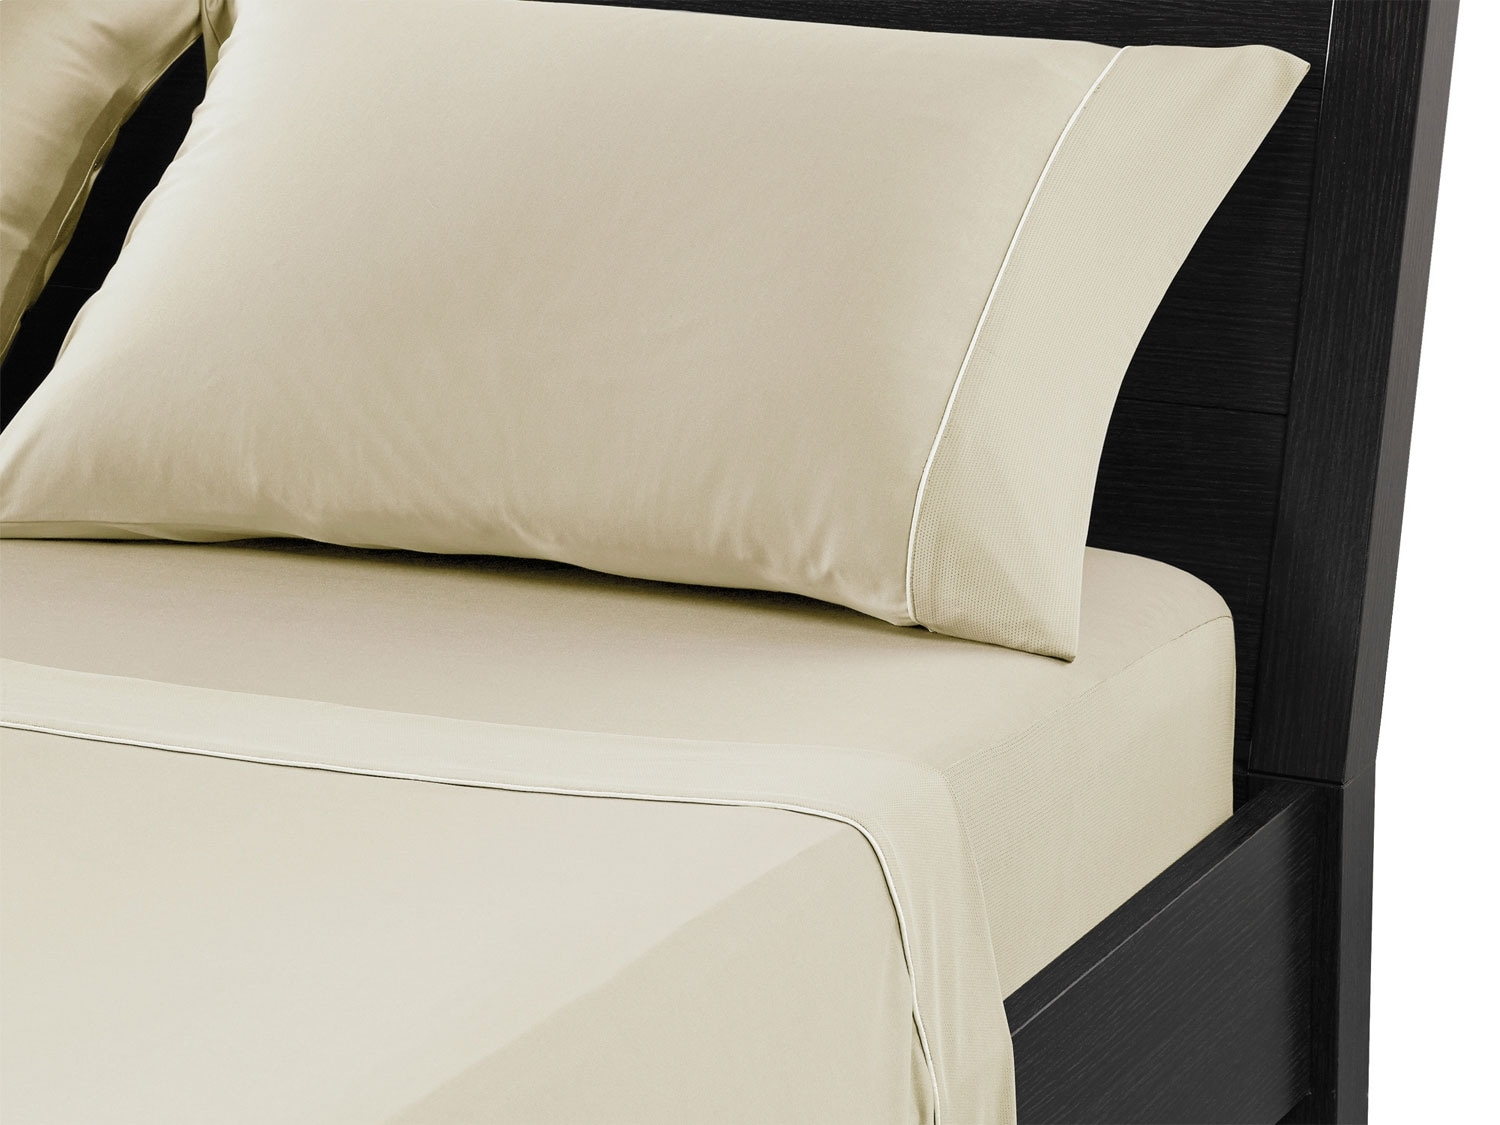 Mattresses and Bedding - Bedgear™ Dri-Tec® Queen Sheet Set – Champagne